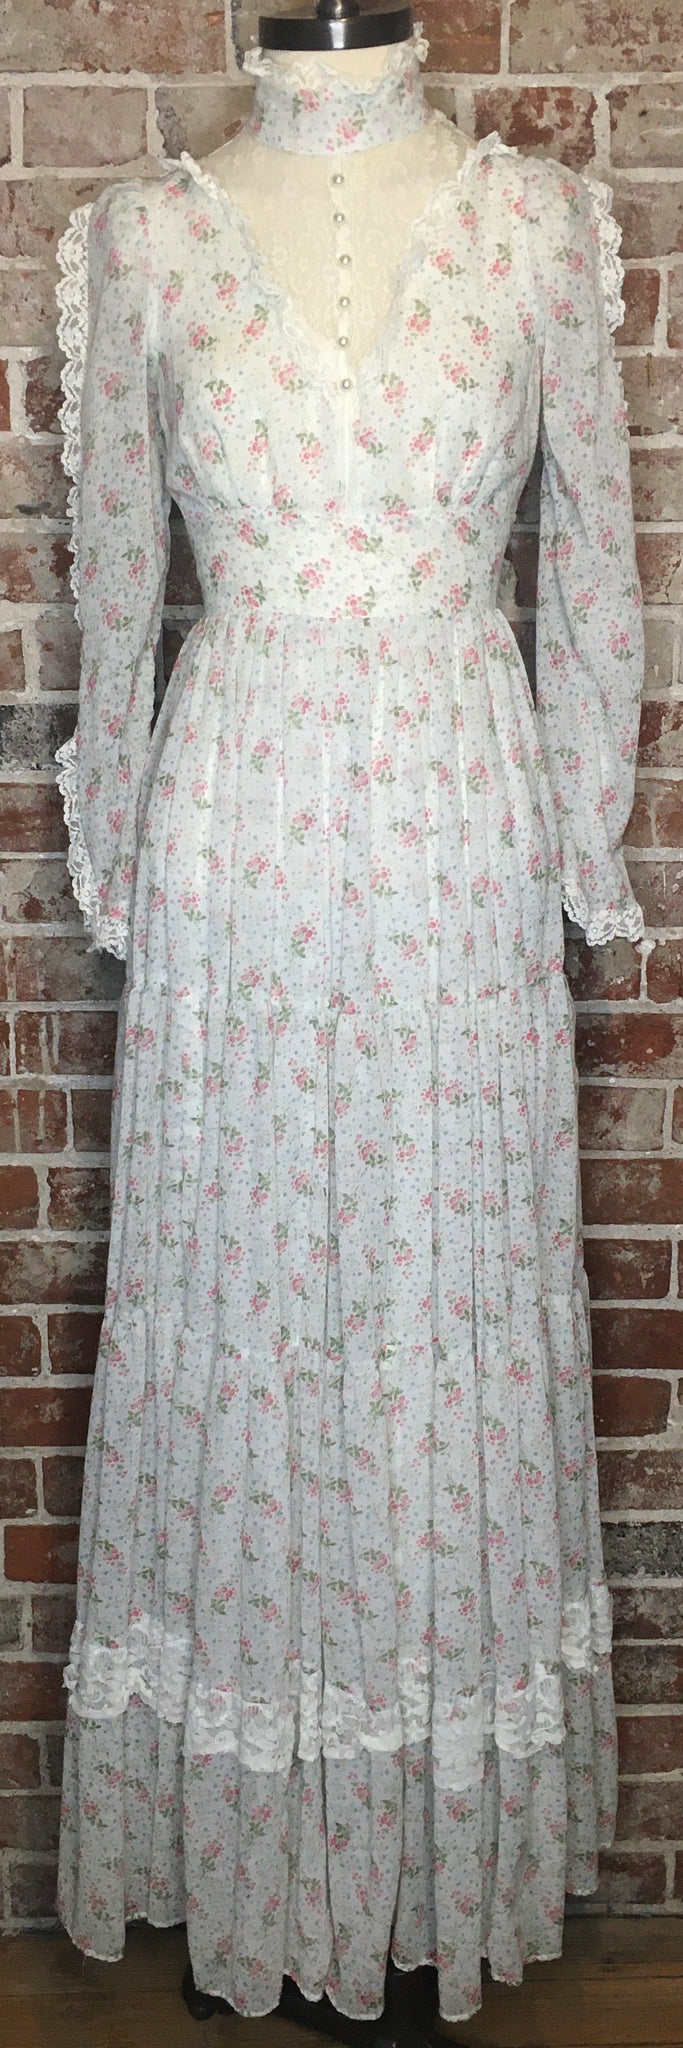 Rare Sheer Ethereal Boho Hippie Gunne Sax Dress